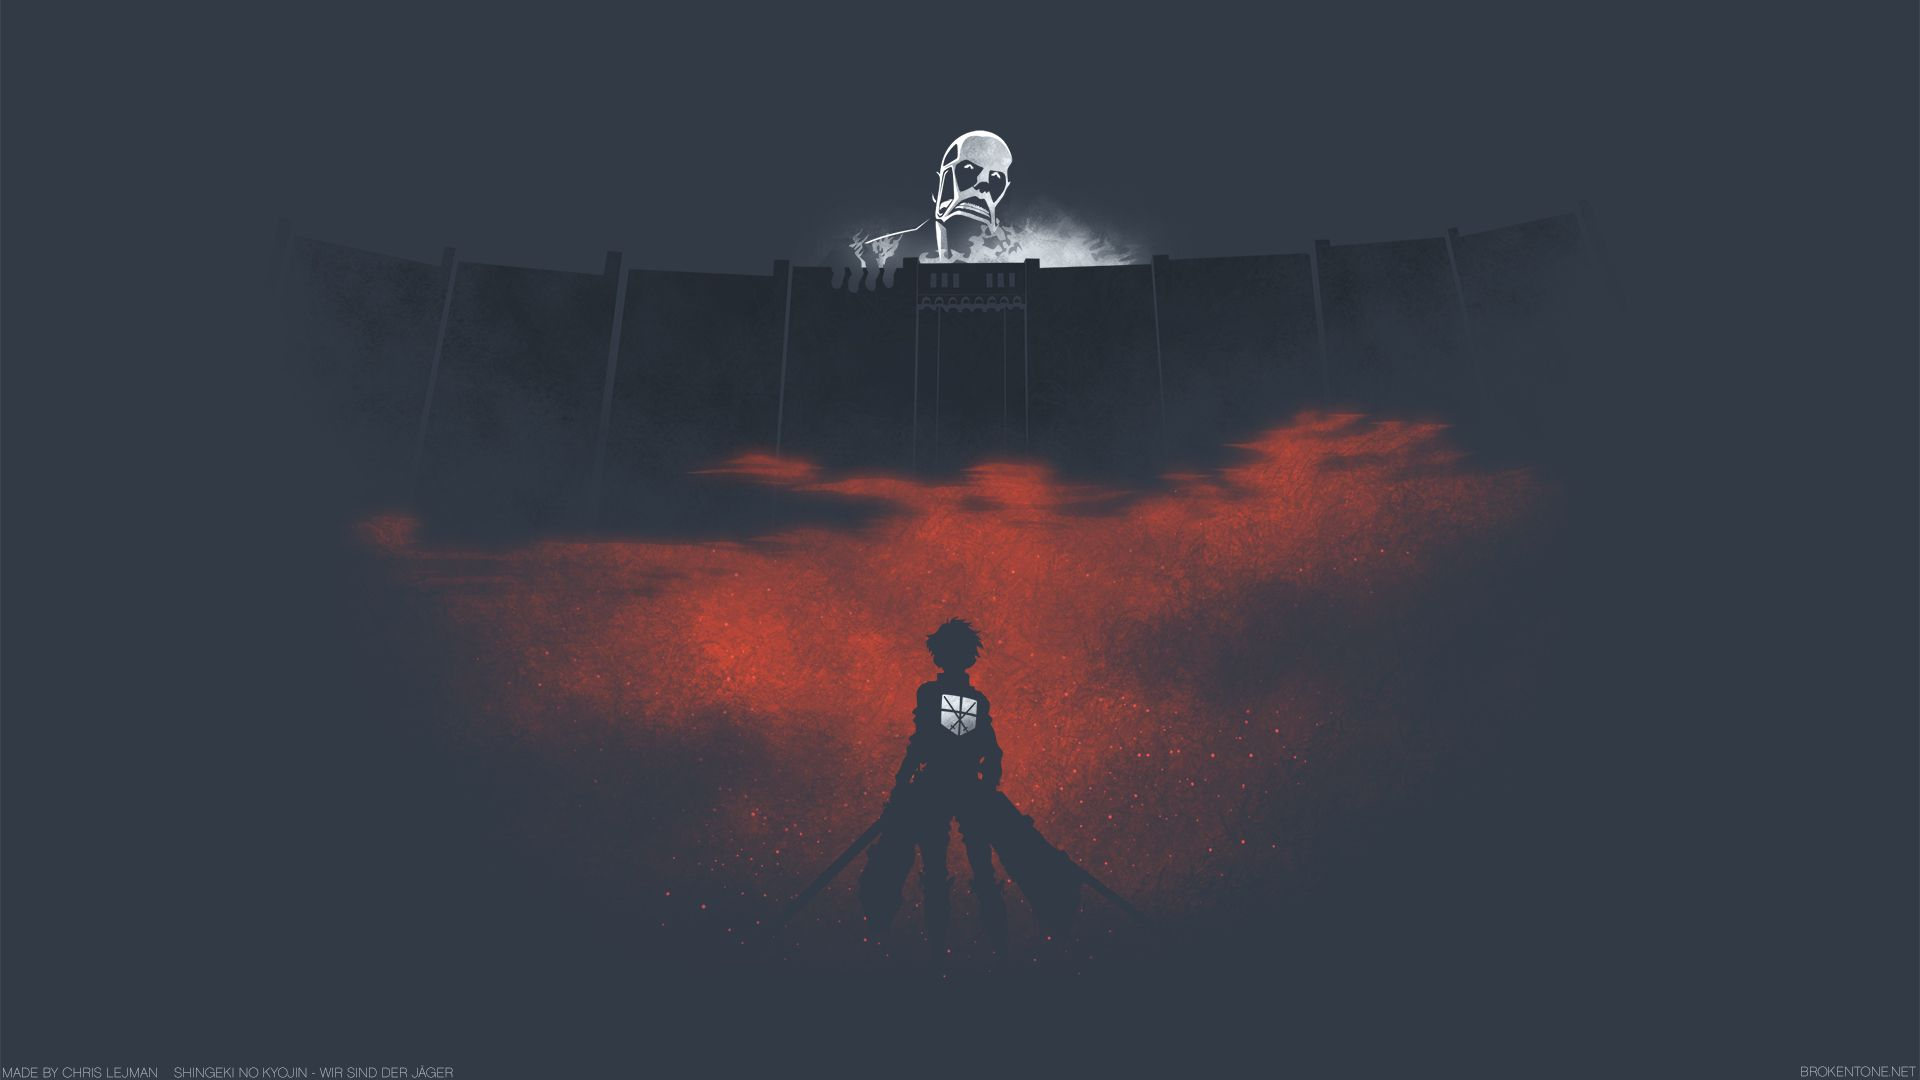 Minimalist Attack On Titan Wallpaper 1920x1080